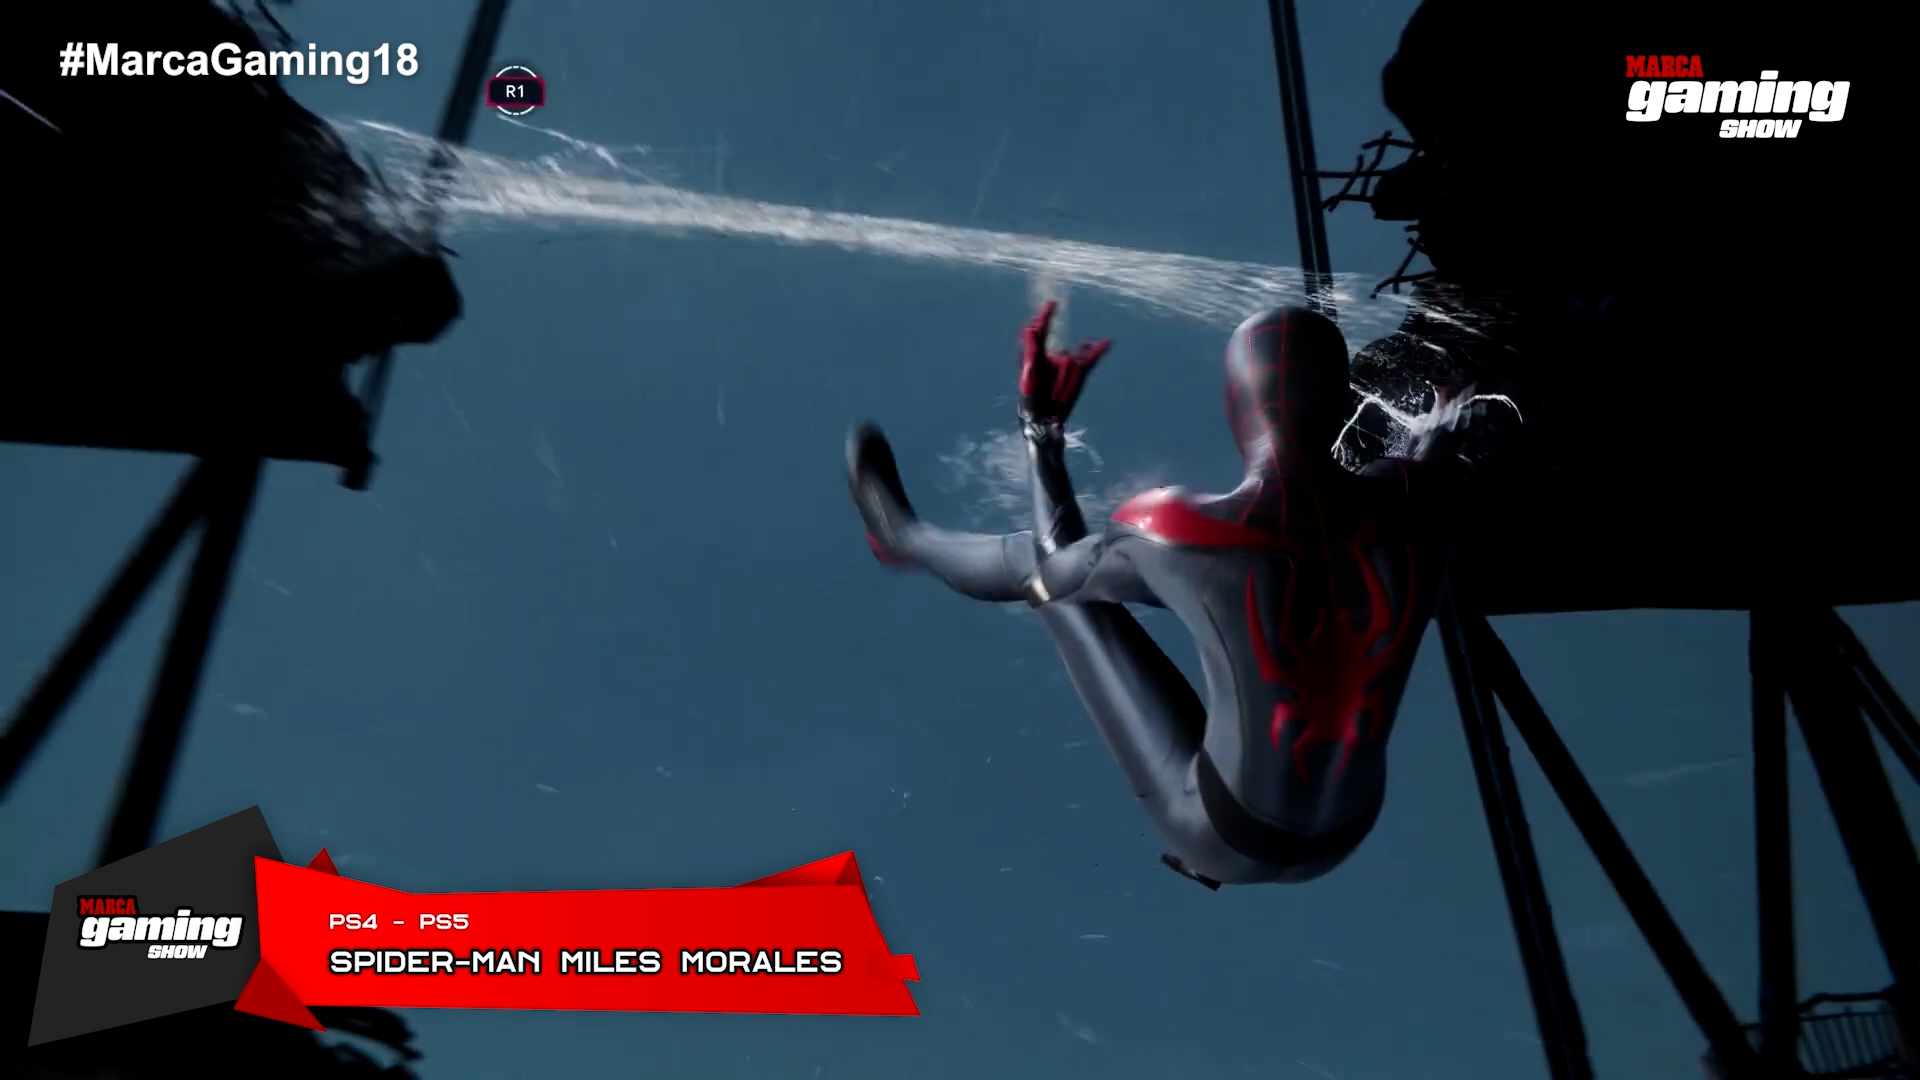 Spider-Man Miles Morales (PS4 - PS5)